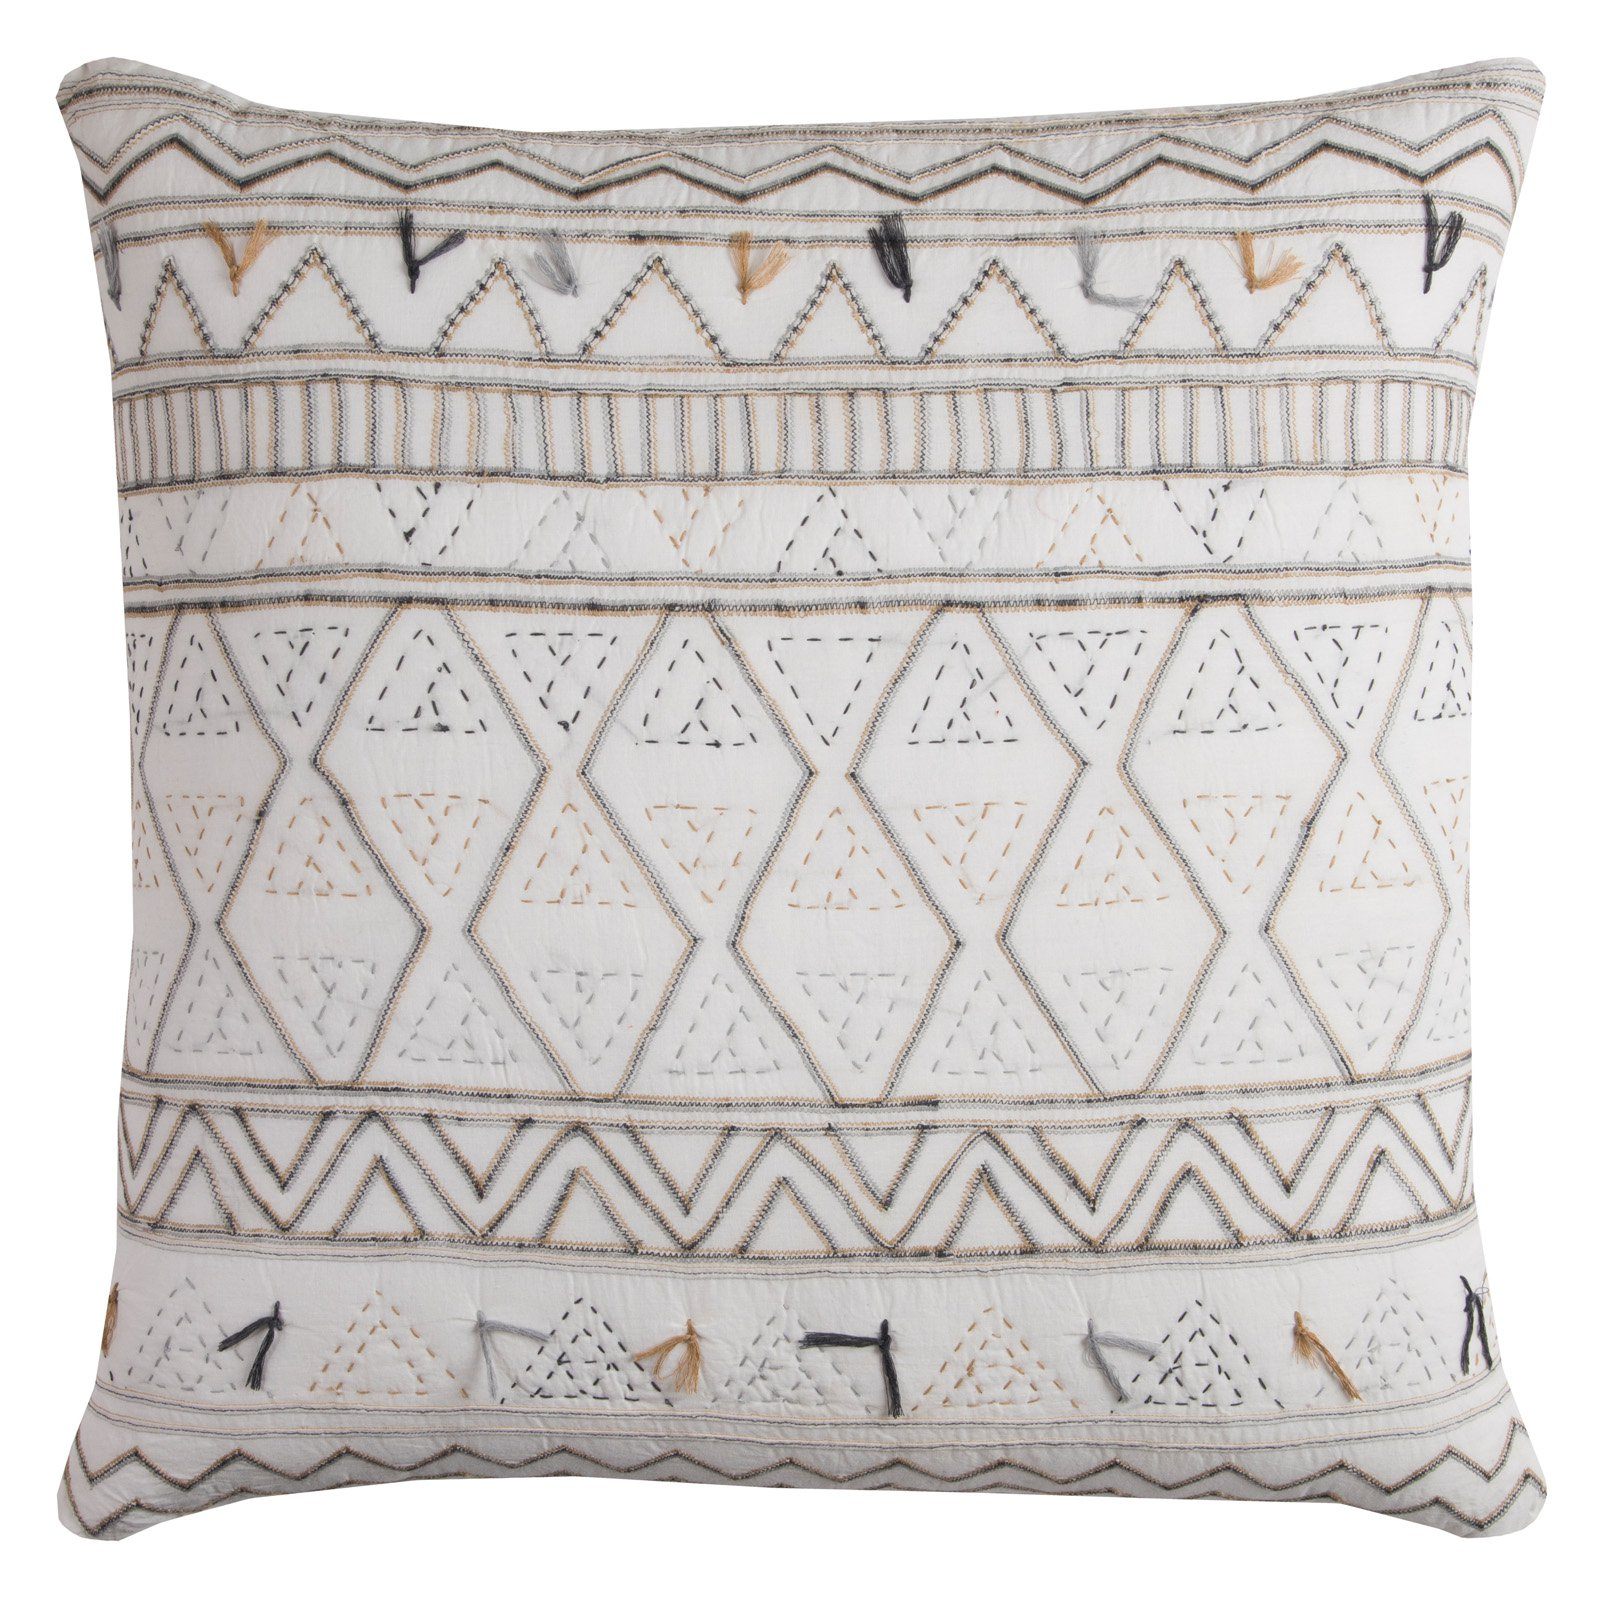 "Rizzy Home Decorative Throw Pillow with Zipper Closer, 22"" x 22"", Ivory"